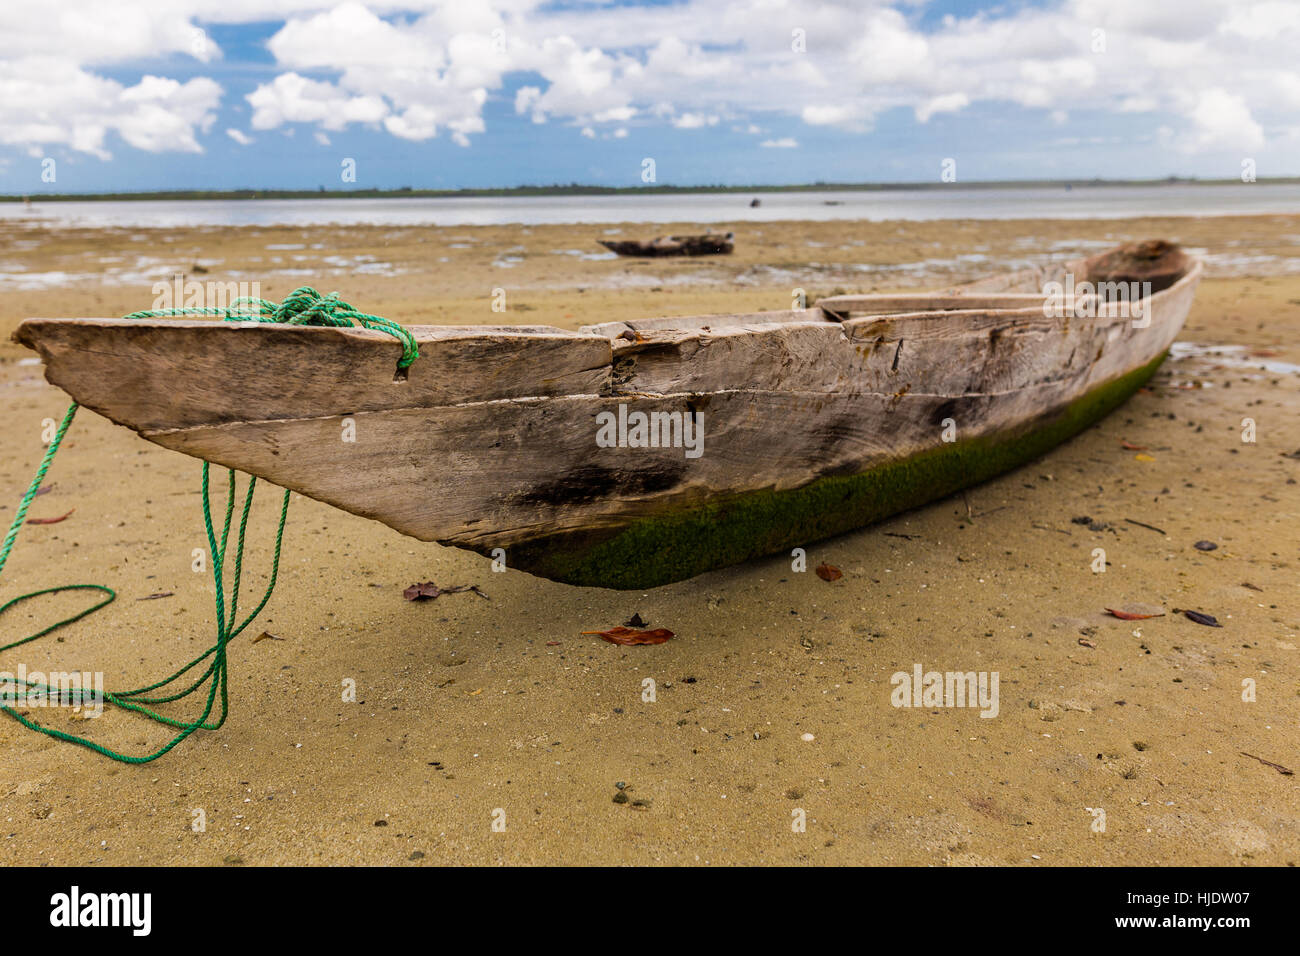 Native fisherman's simple wooden boat with green seaweed and blue sky in the background, Uzi Island, Zanzibar, - Stock Image